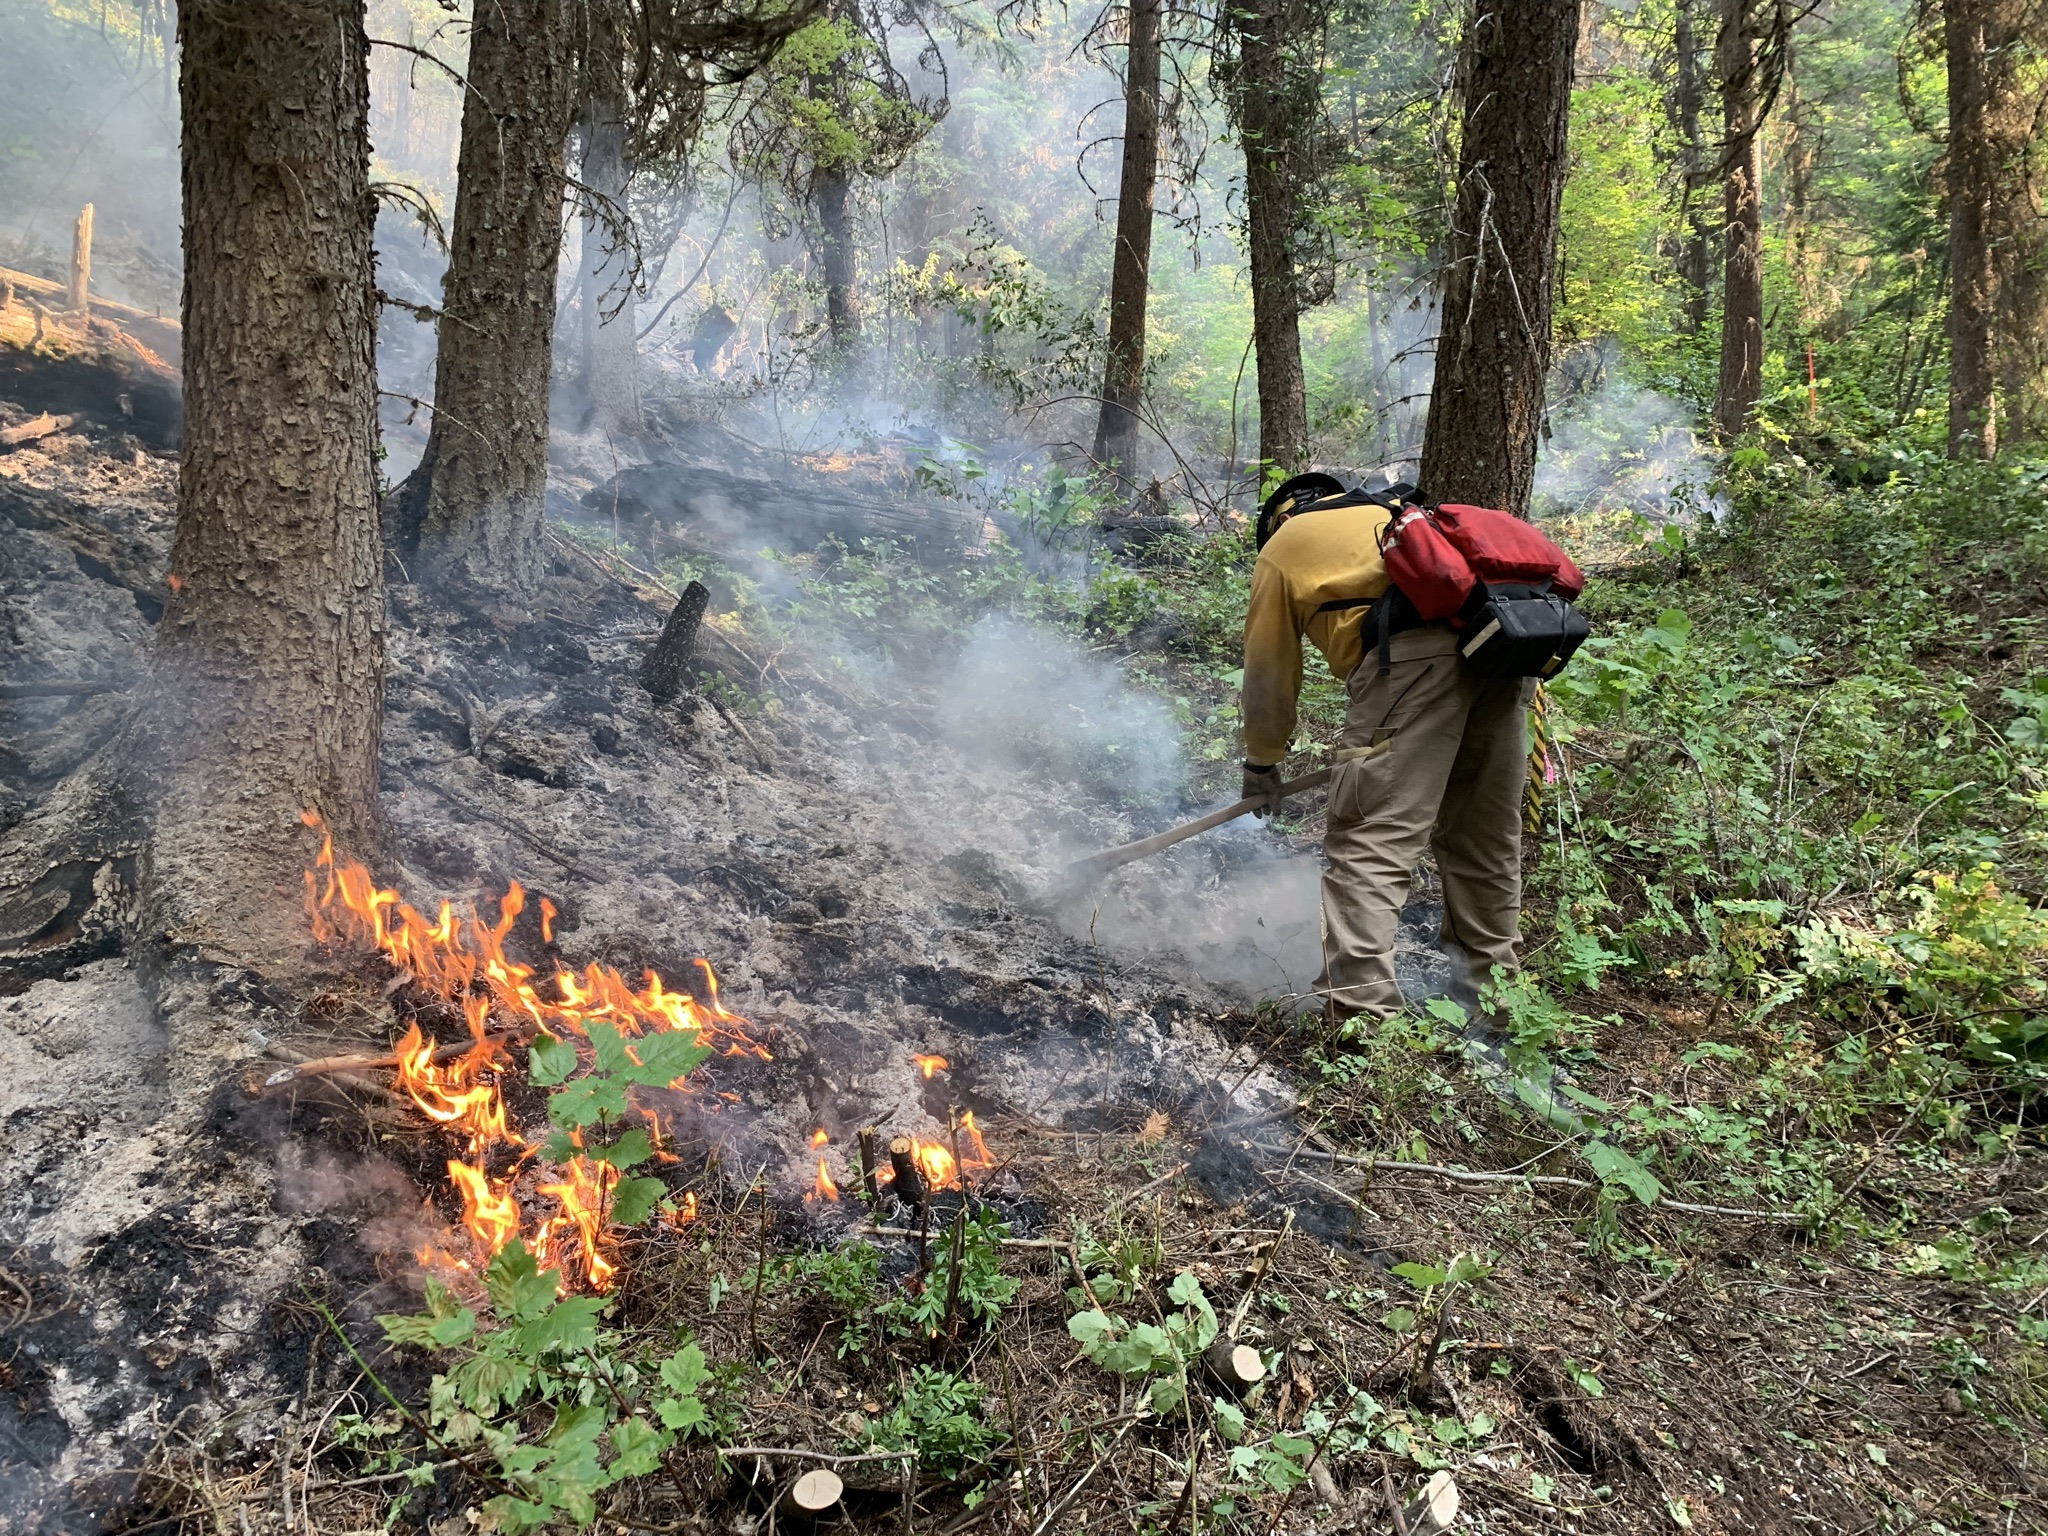 Firefighter containing wildfire in between trees